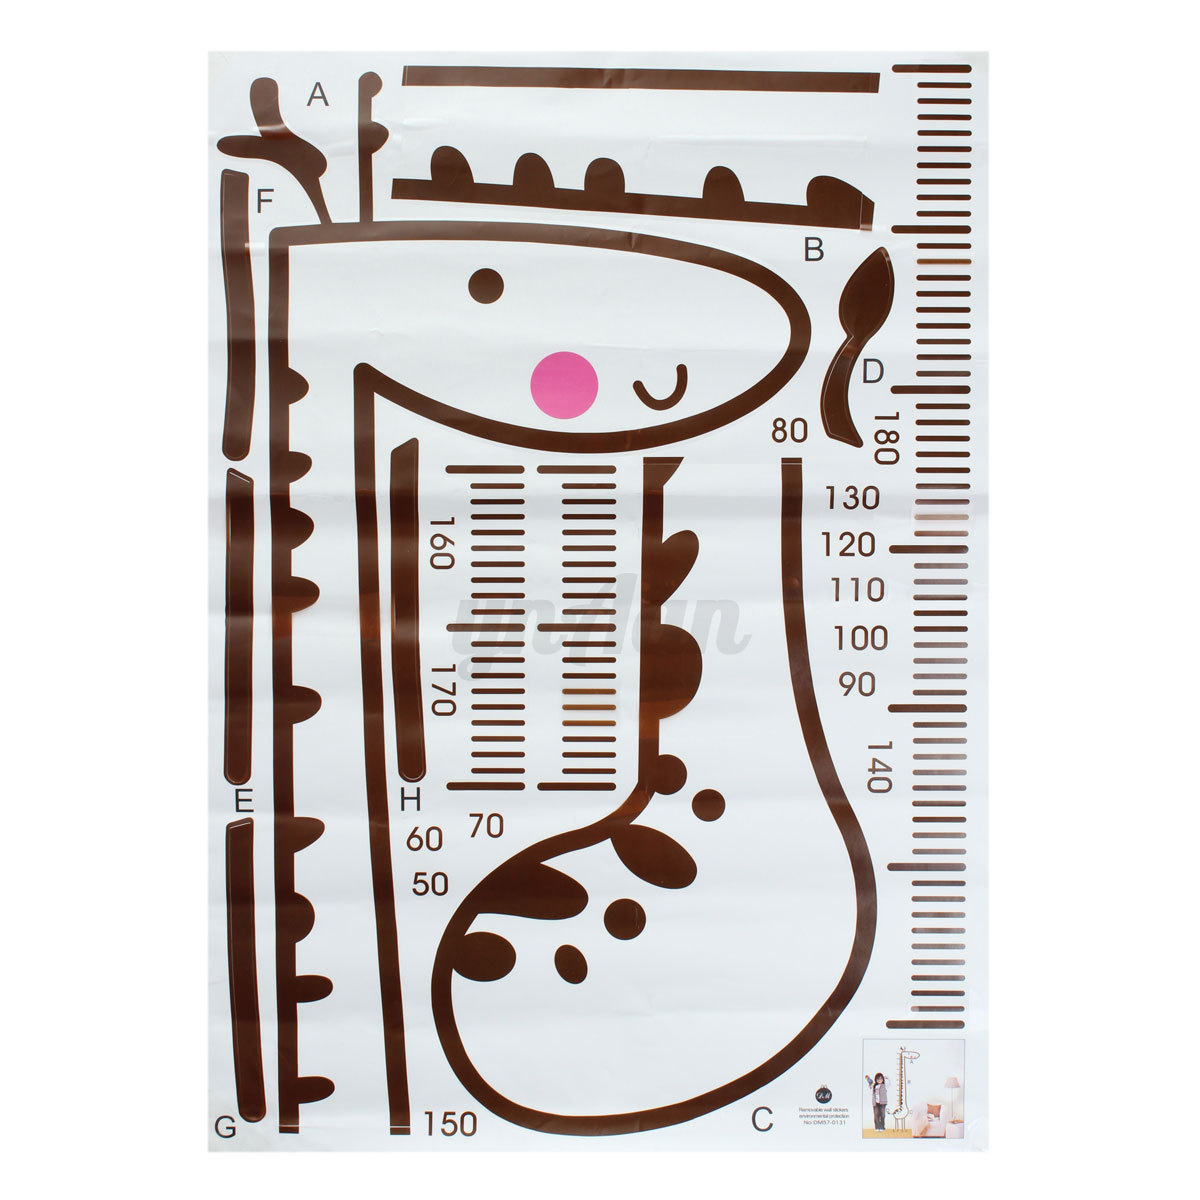 Wall Art Hanging Height : Removable giraffe wall sticker kids growth chart height